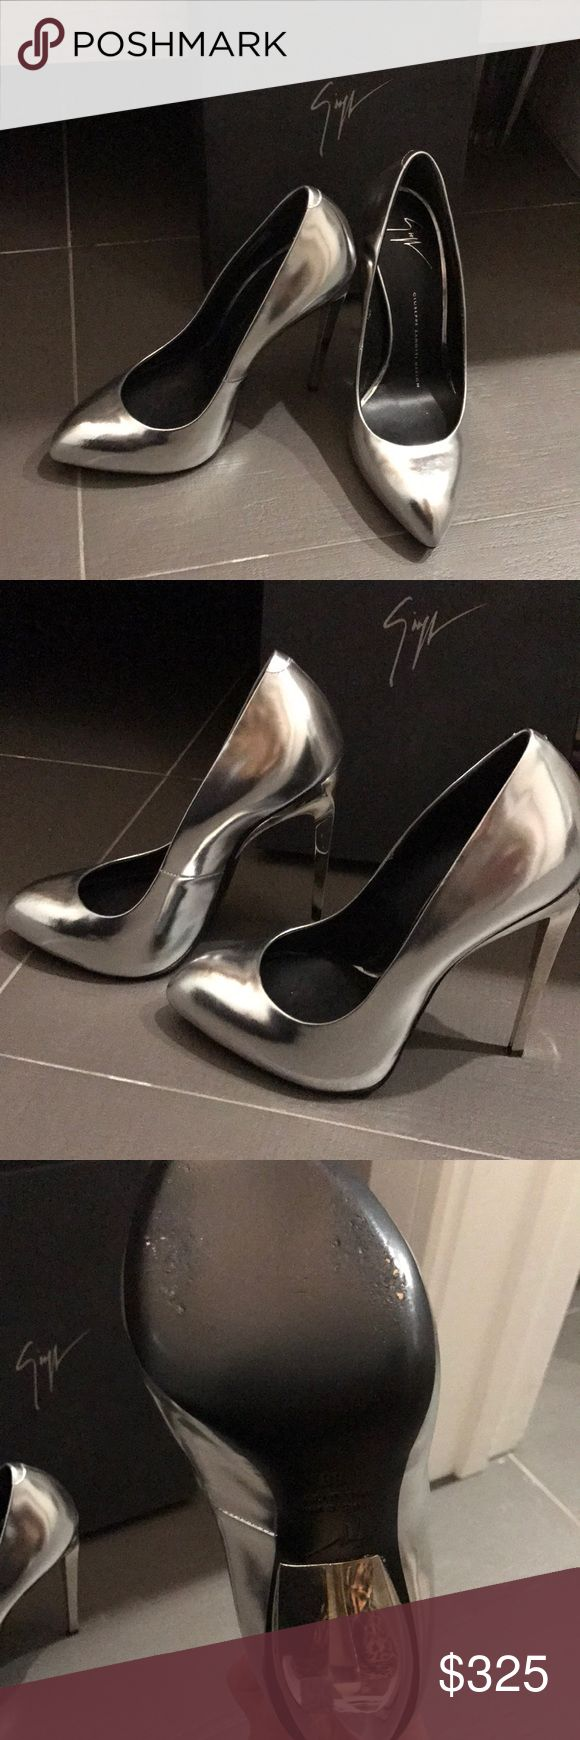 Giuseppe zanotti Must have! Beautiful high heel silver shoe will dress up any outfit. Will fit size 7 shoe Giuseppe Zanotti Shoes Heels #giuseppezanottiheelssilver #giuseppezanottiheelsoutfit